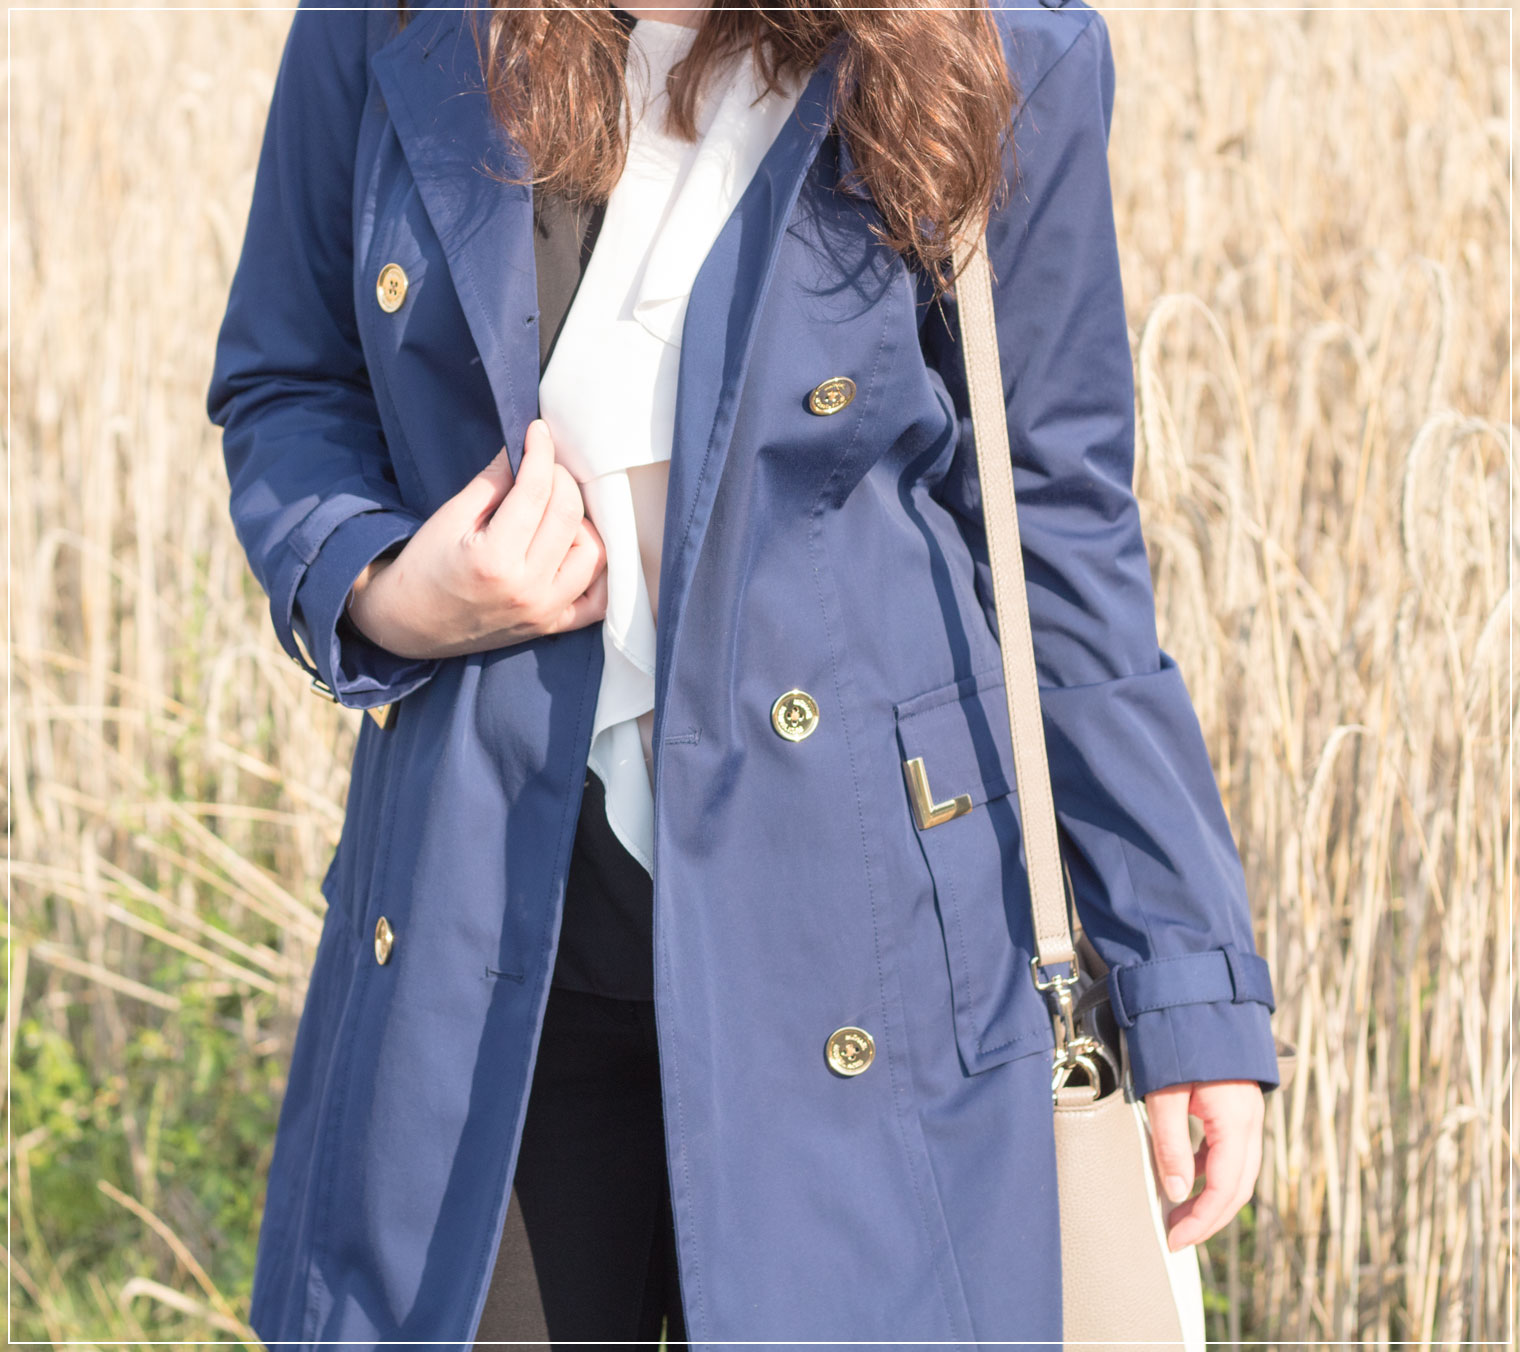 Trenchcoat, Michael Kors, Mode-Klassiker, Essential, Sommertrend 2017, Volants